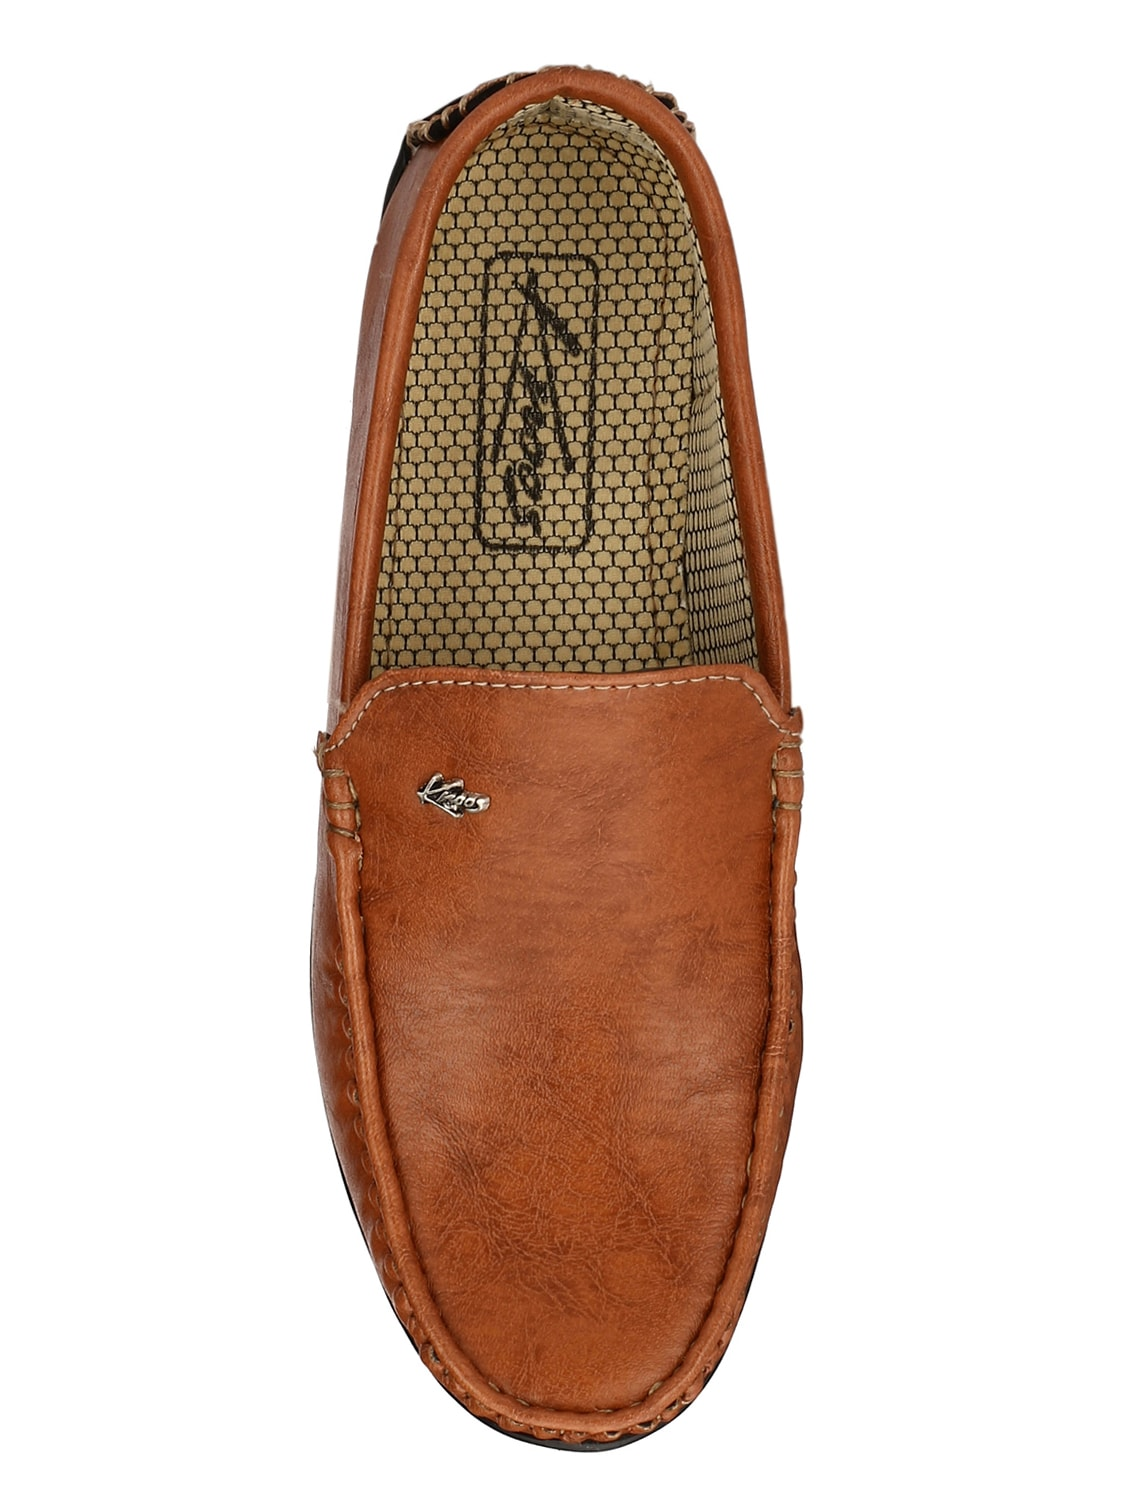 cd6d0f64335 Buy Tan Leatherette Office Wear Loafer by Knoos - Online shopping for  Loafers in India